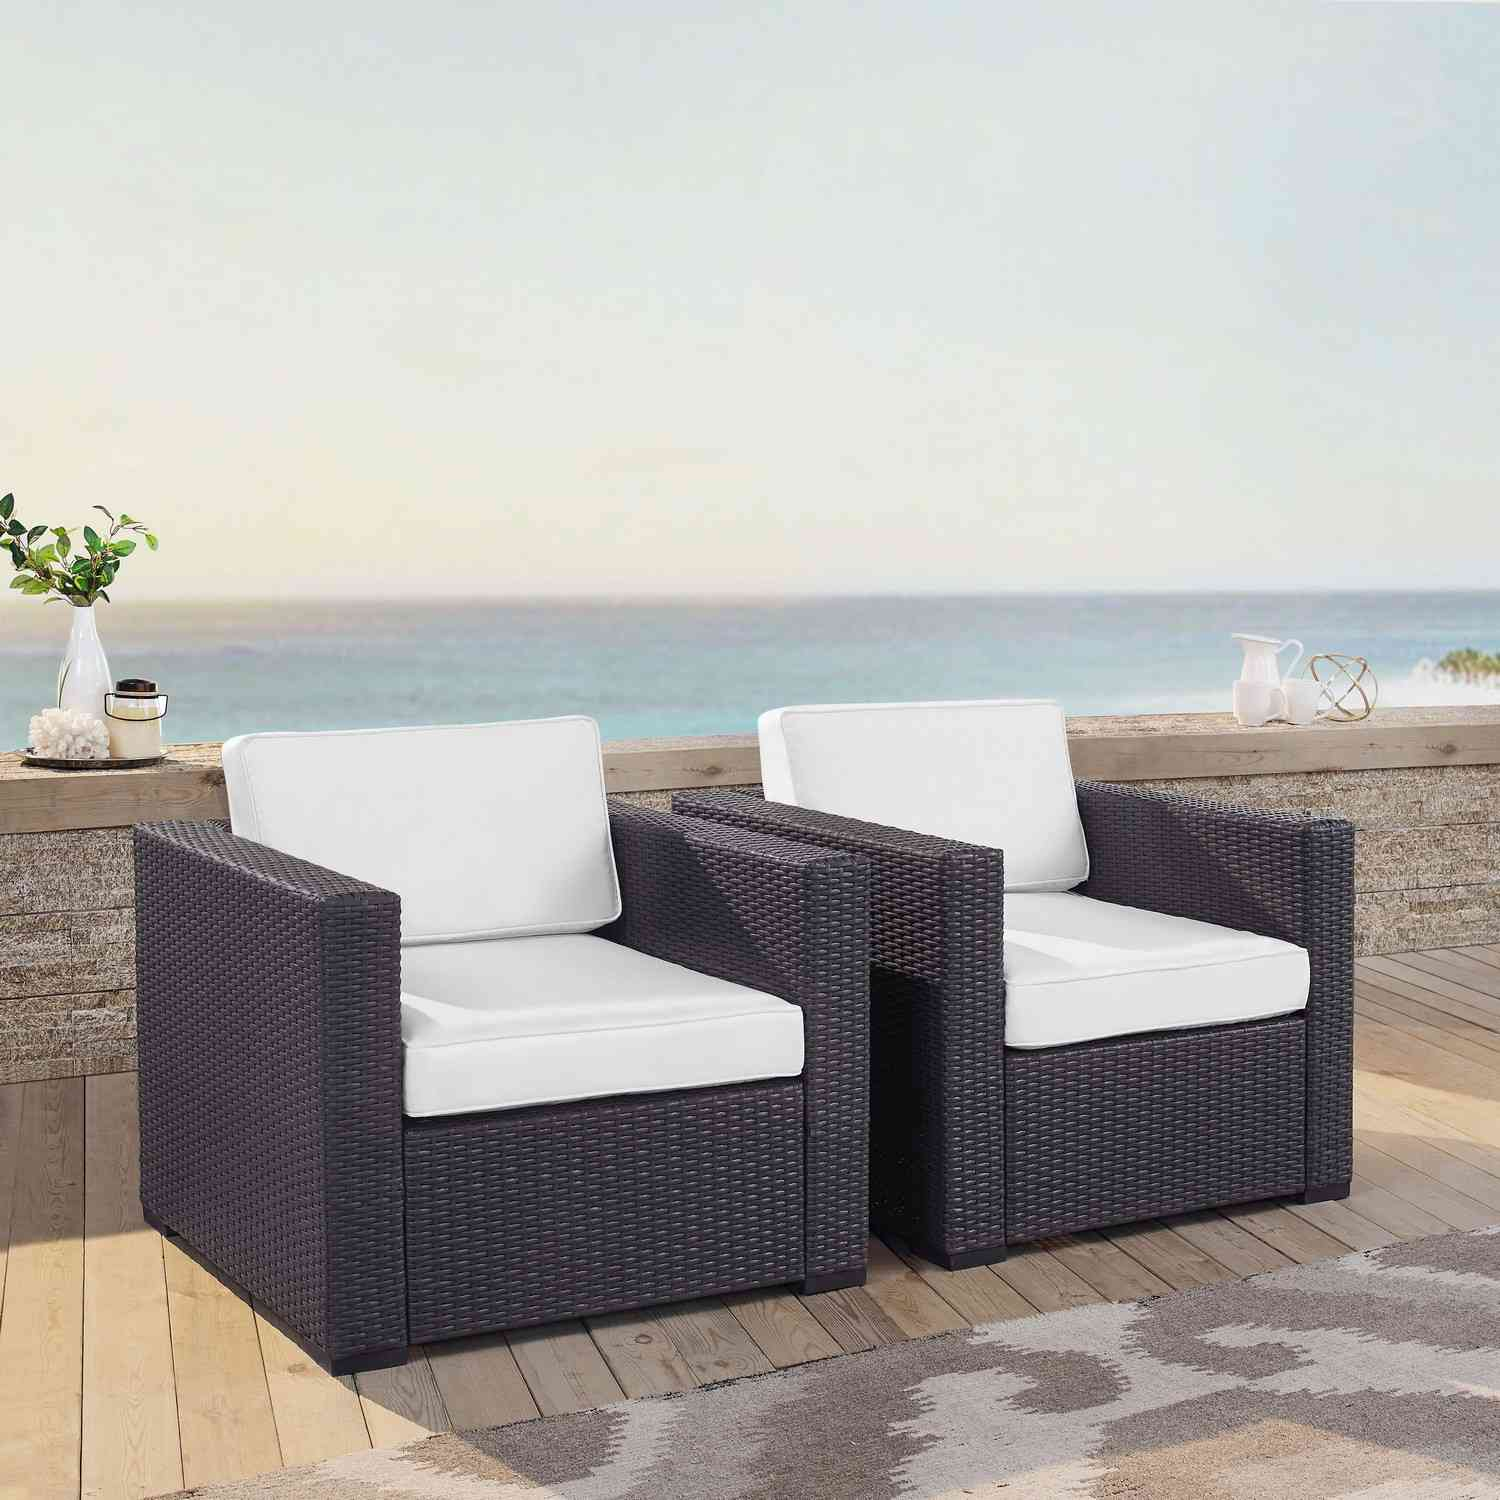 Crosley Biscayne Outdoor Wicker Chair - Set of 2 - White/Brown